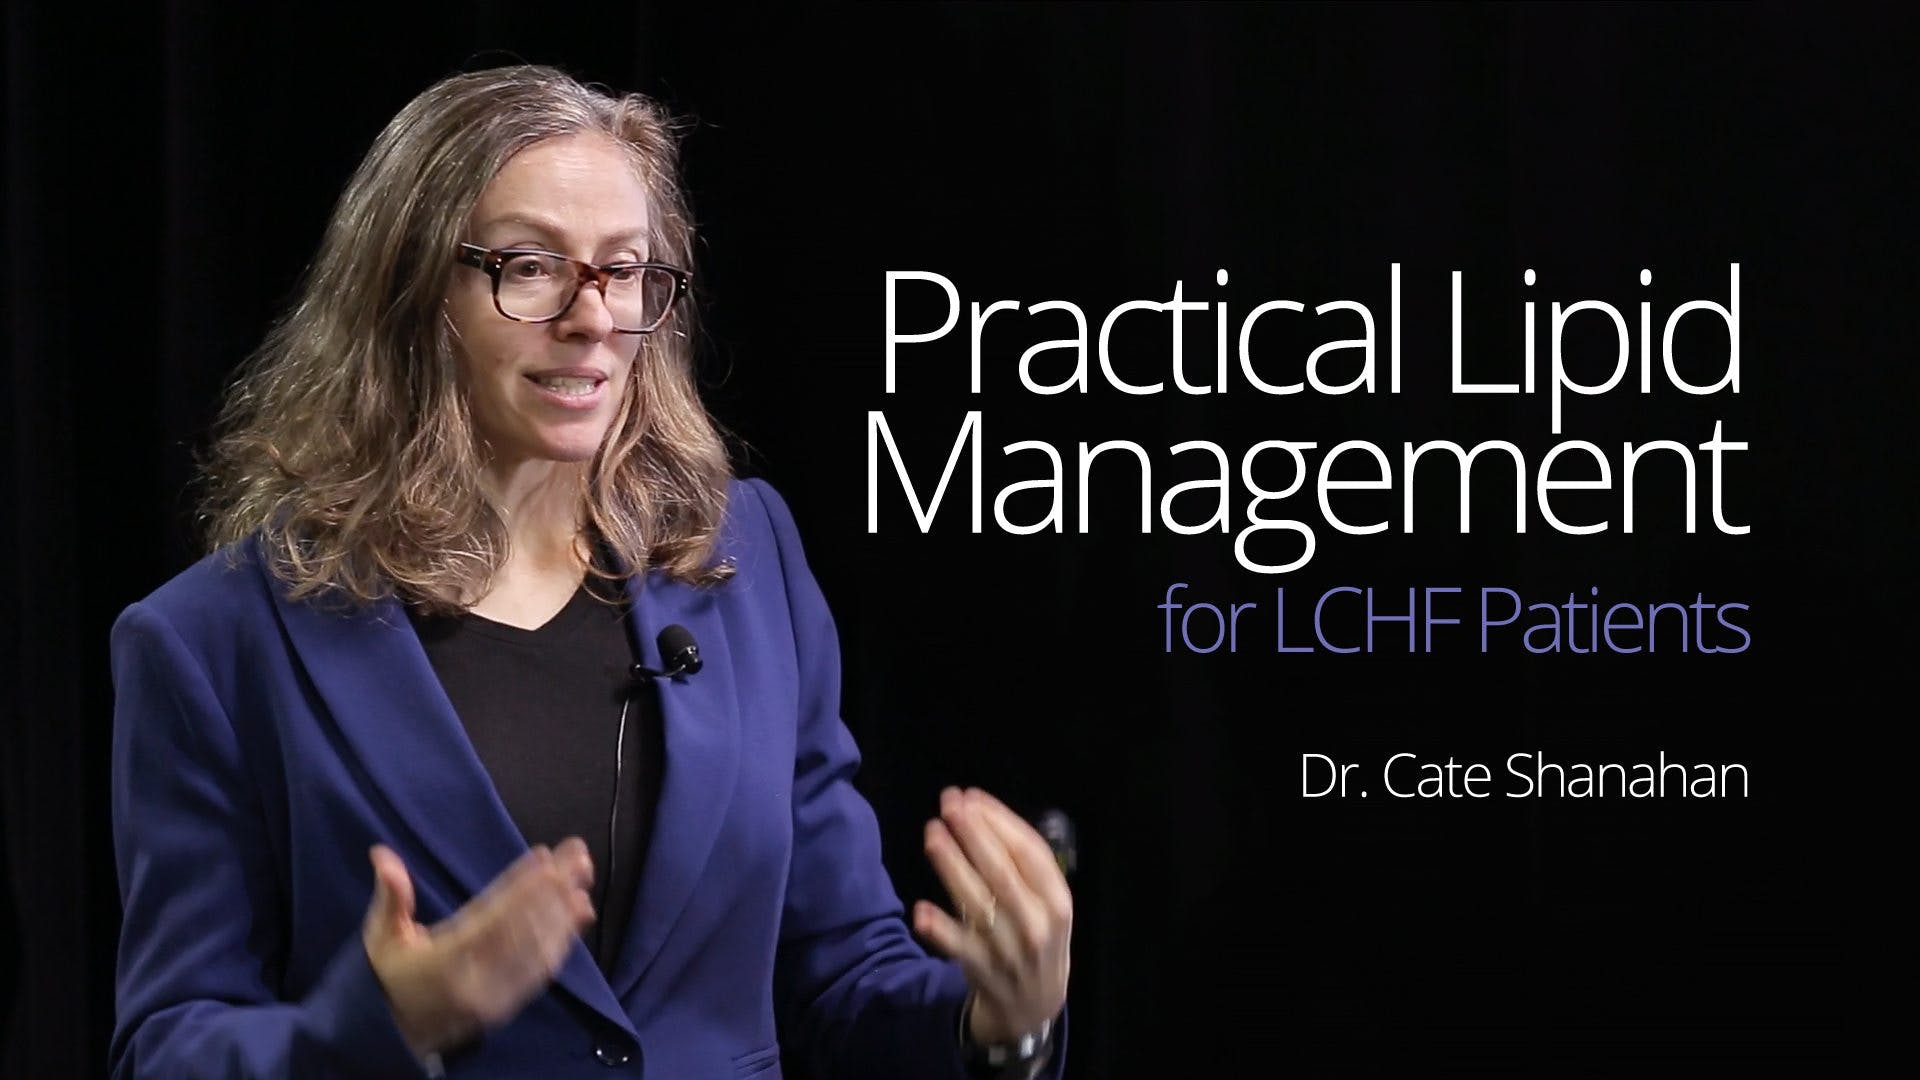 Practical Lipid Management